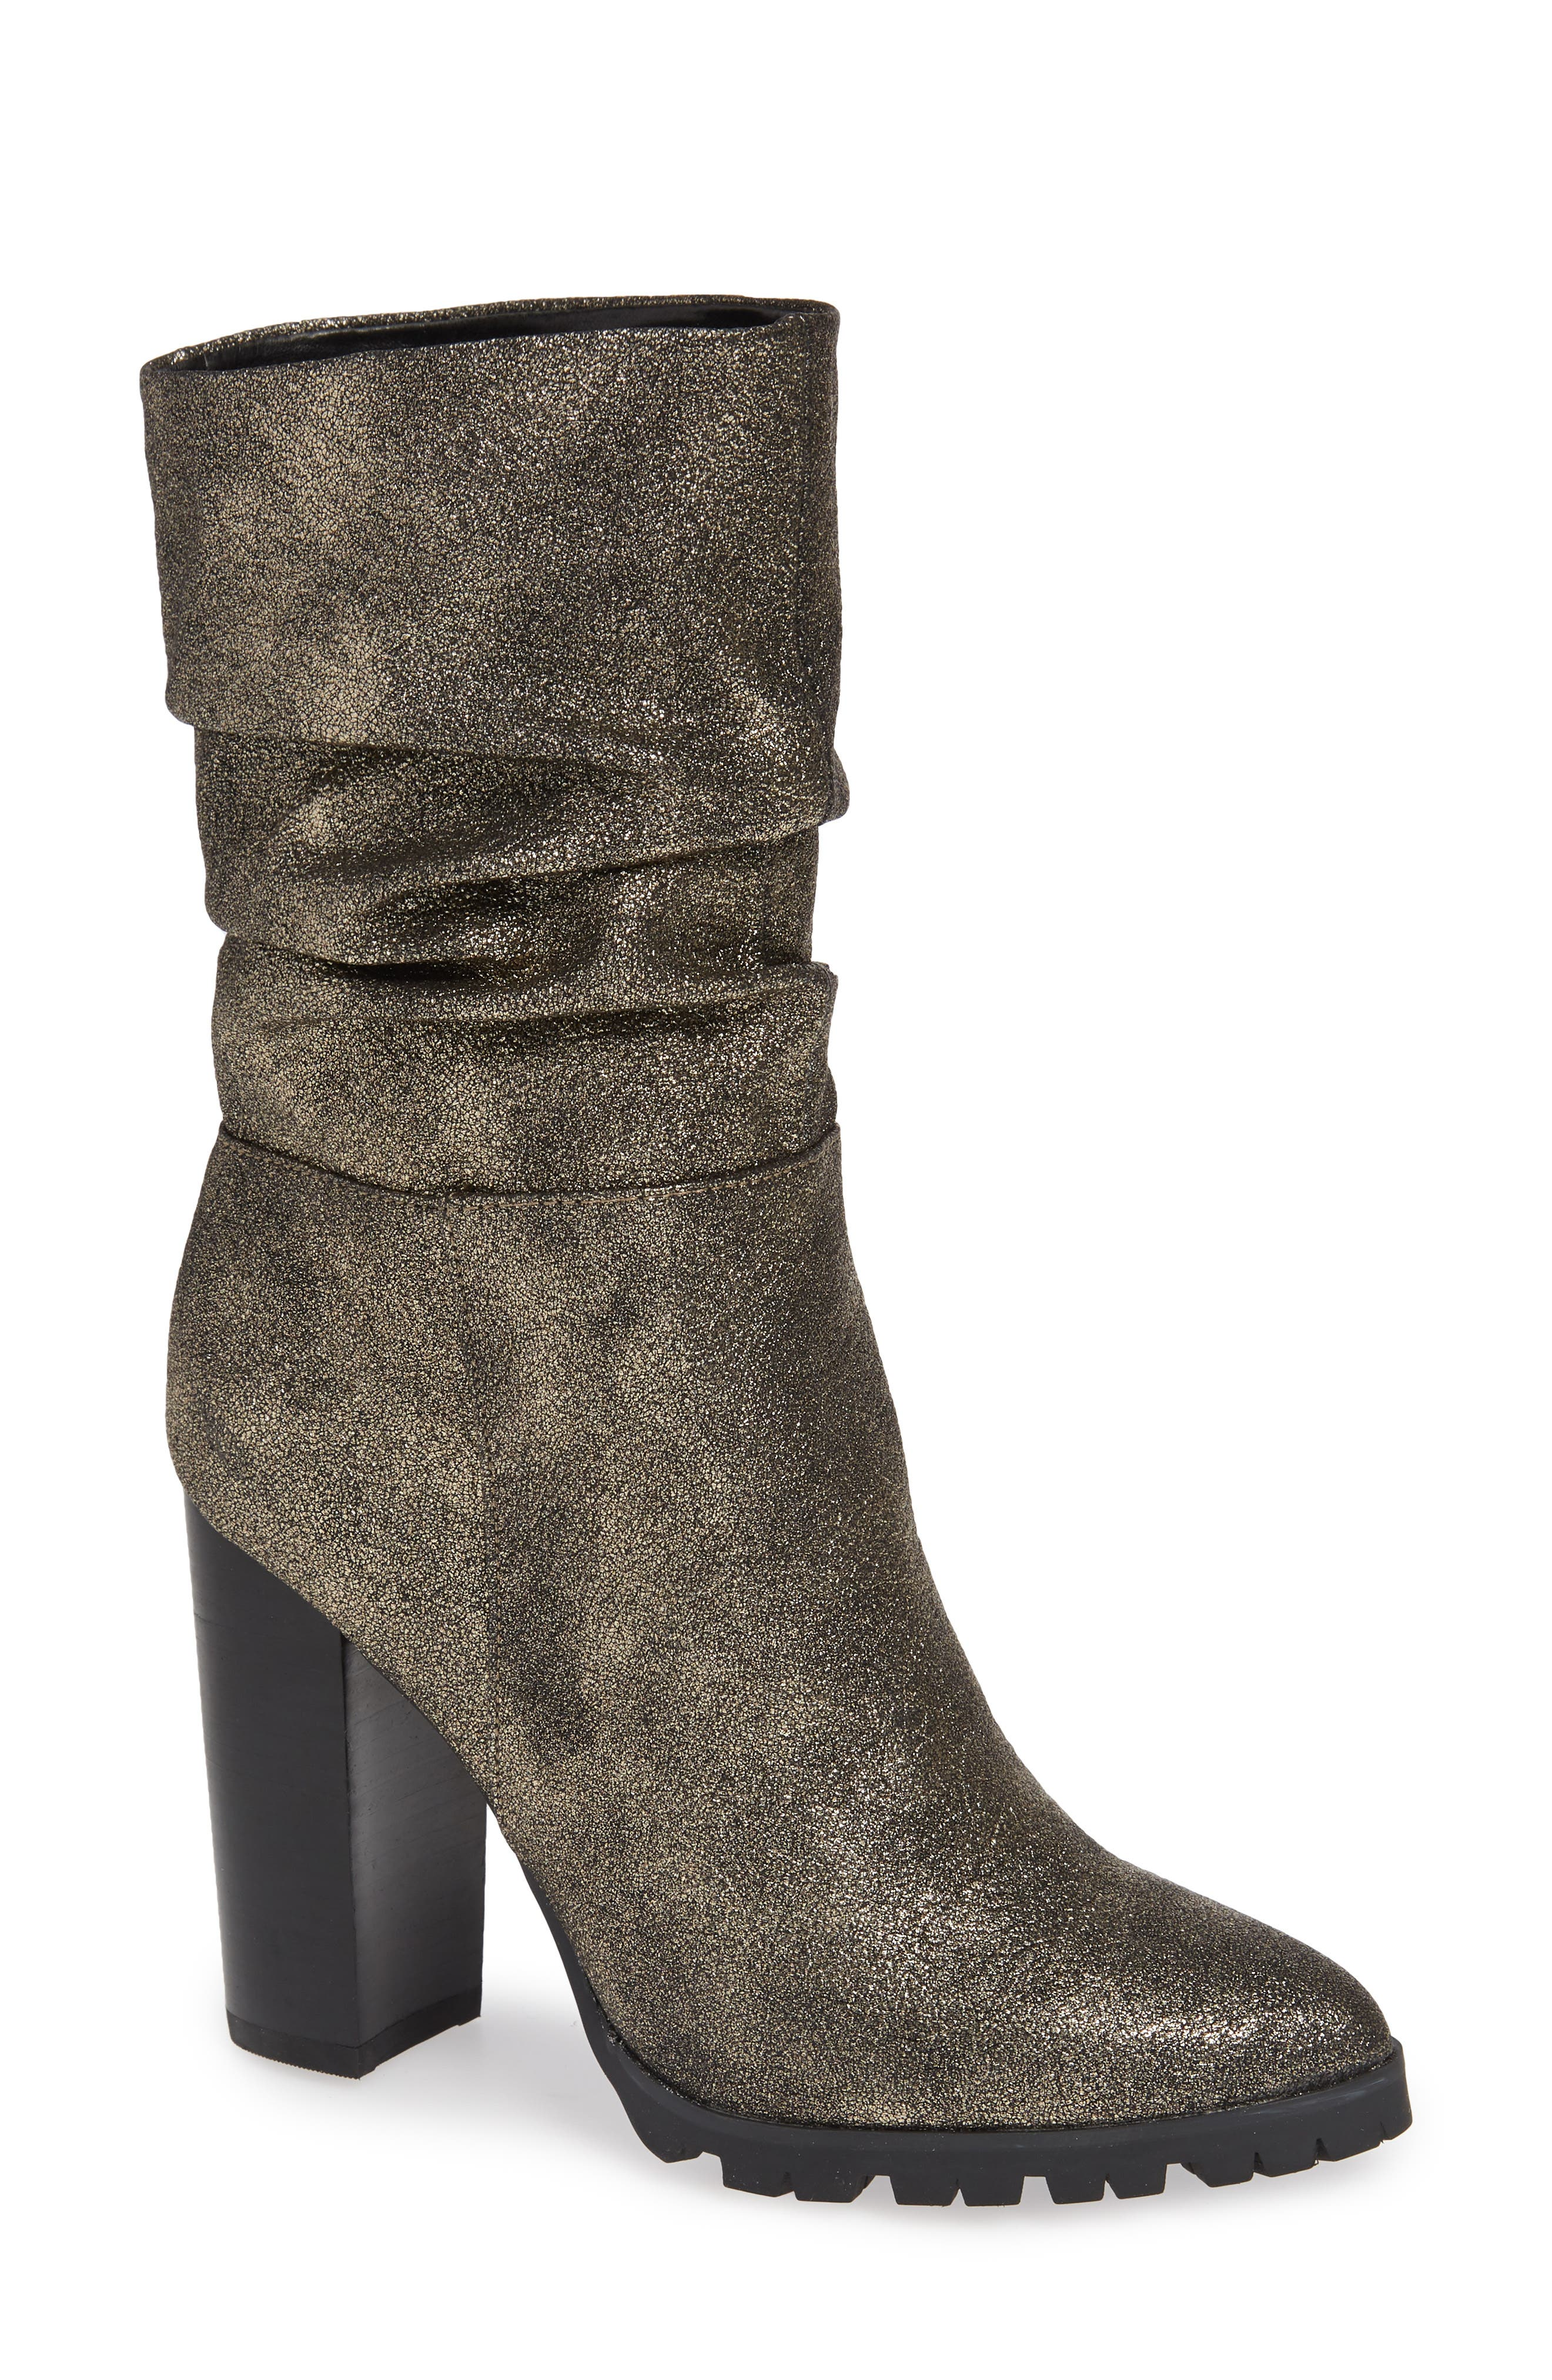 KATY PERRY Slouch Bootie in Gunmetal